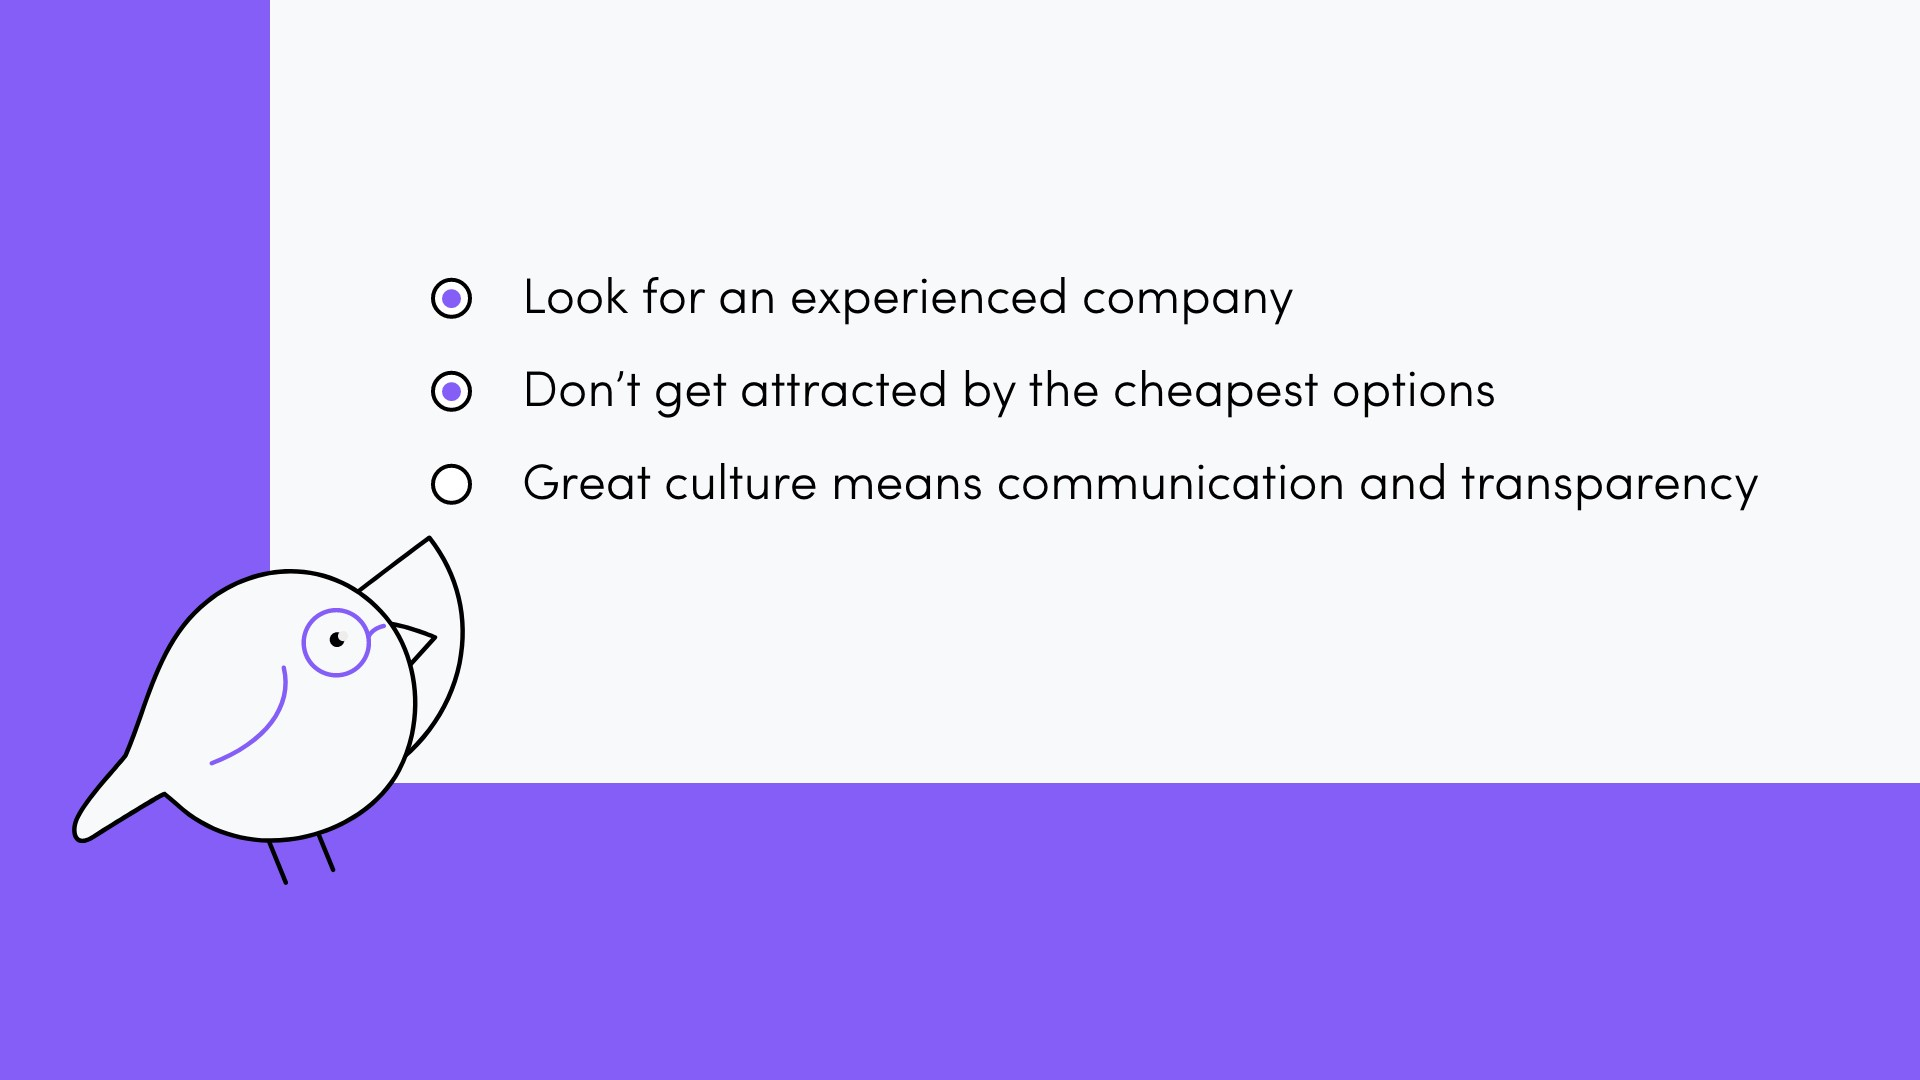 criteria for choosing a software house: look for an experienced company, don't get attracted by the cheapest options, great culture means communication and transparency